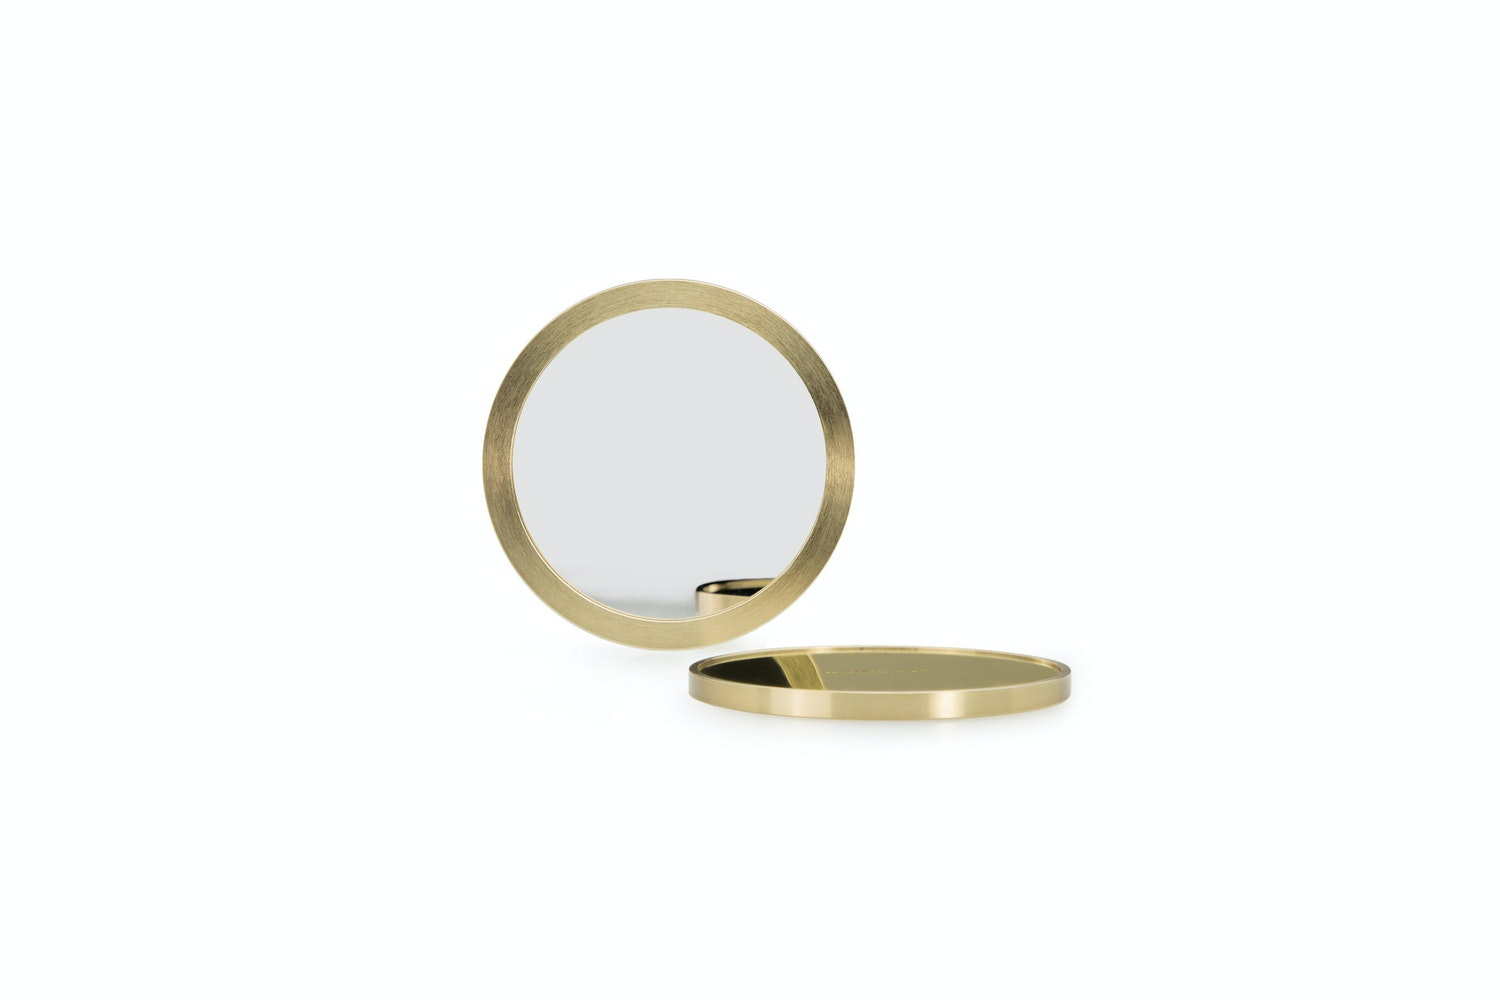 Pocket Mirror with Sleeve - Machined Brass by Minimalux